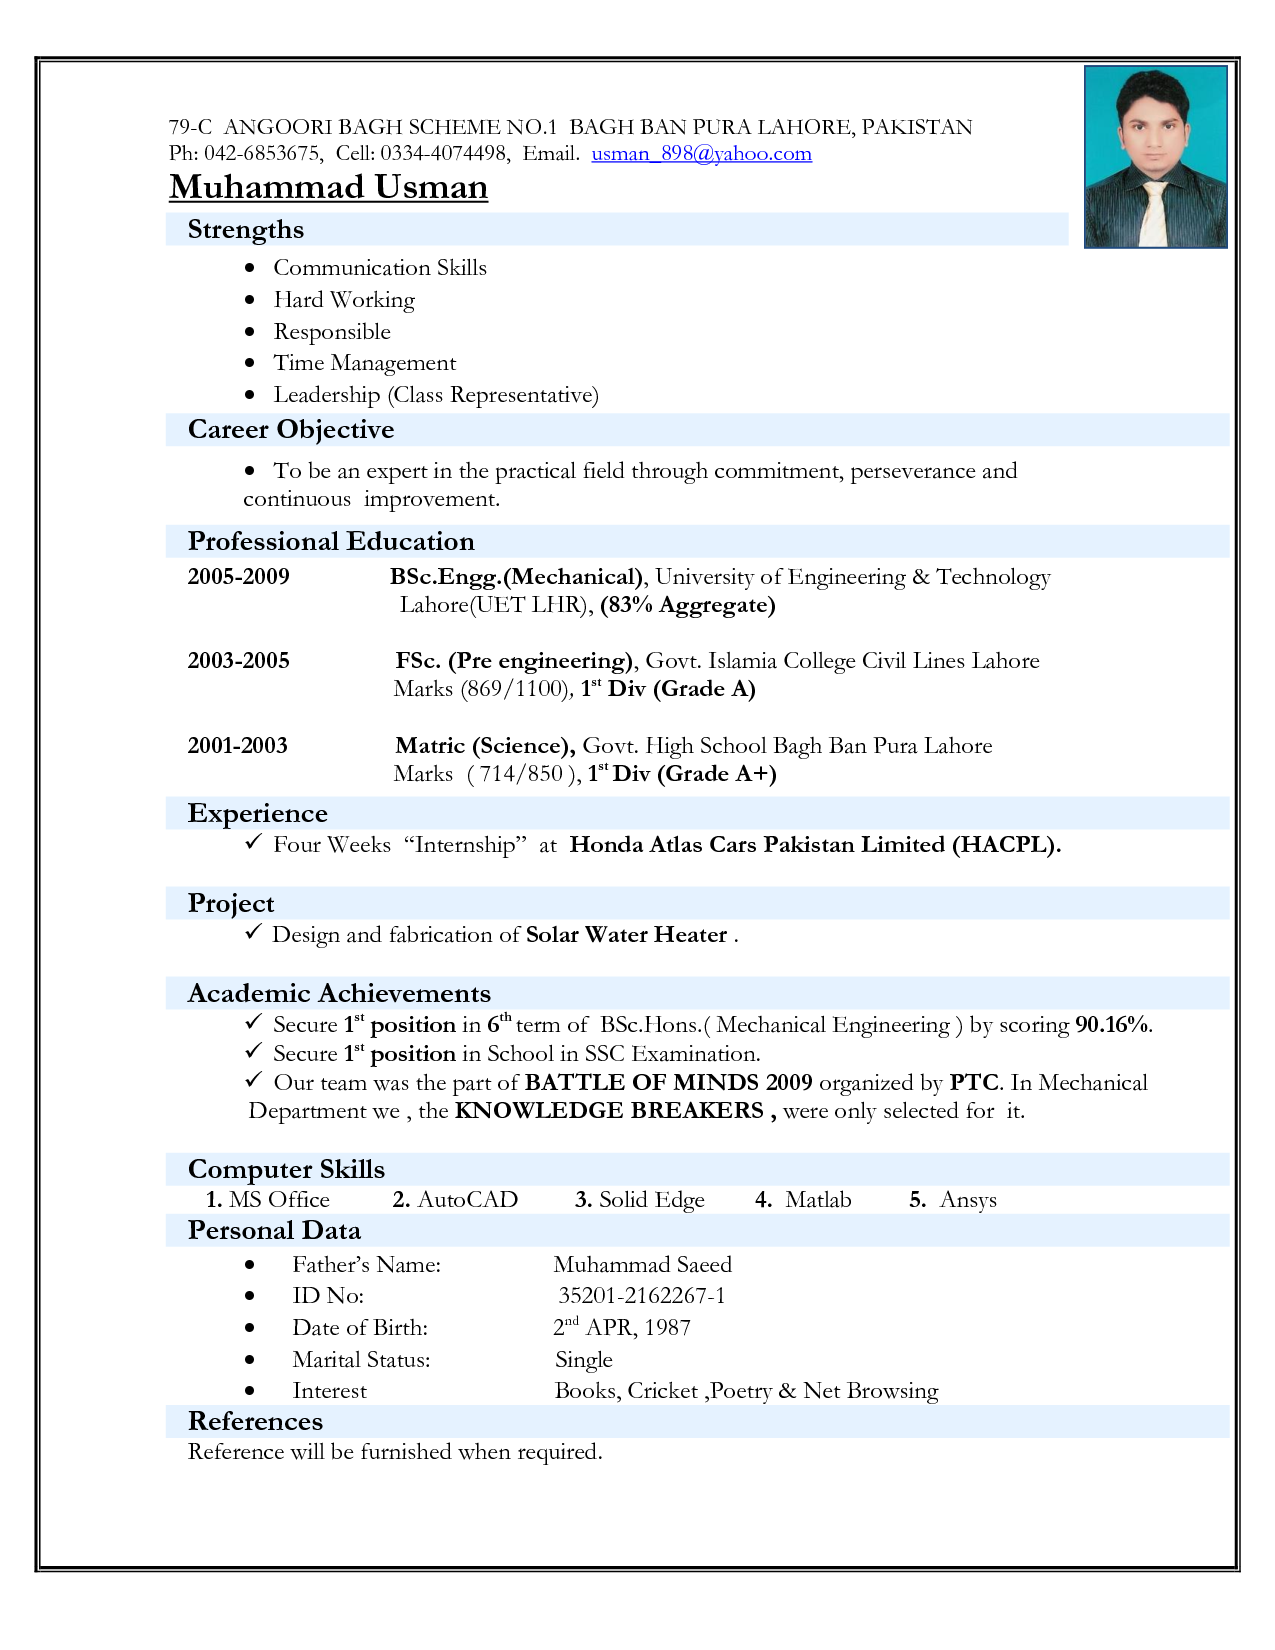 Resume Format Microsoft Word Amusing Resume Format  Google Search  Gift Ideas  Pinterest  Simple Inspiration Design